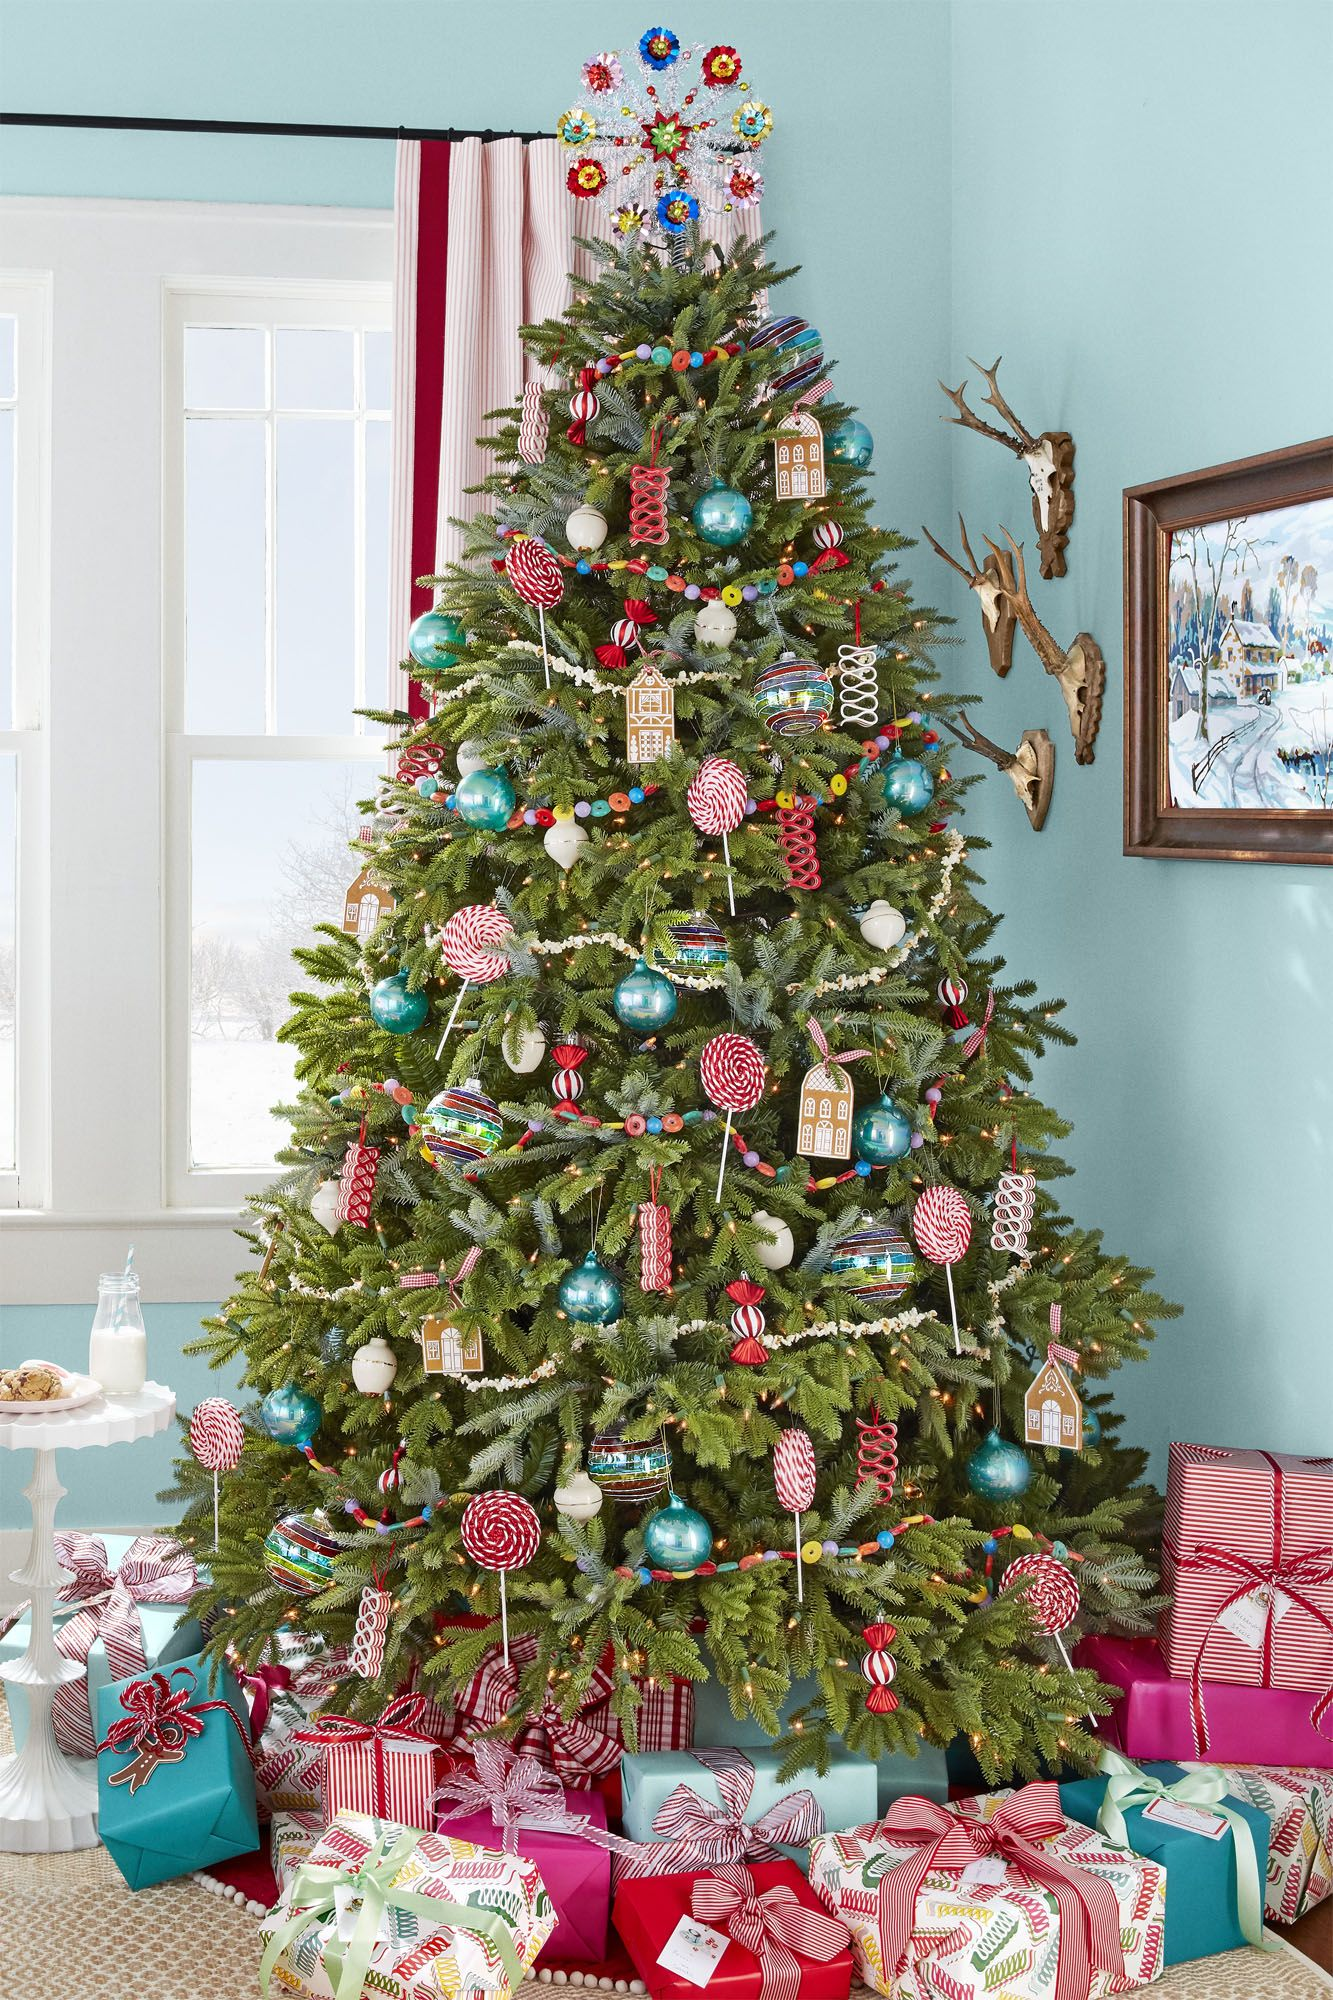 50 Unique Christmas Tree Decorations 2020 Ideas for